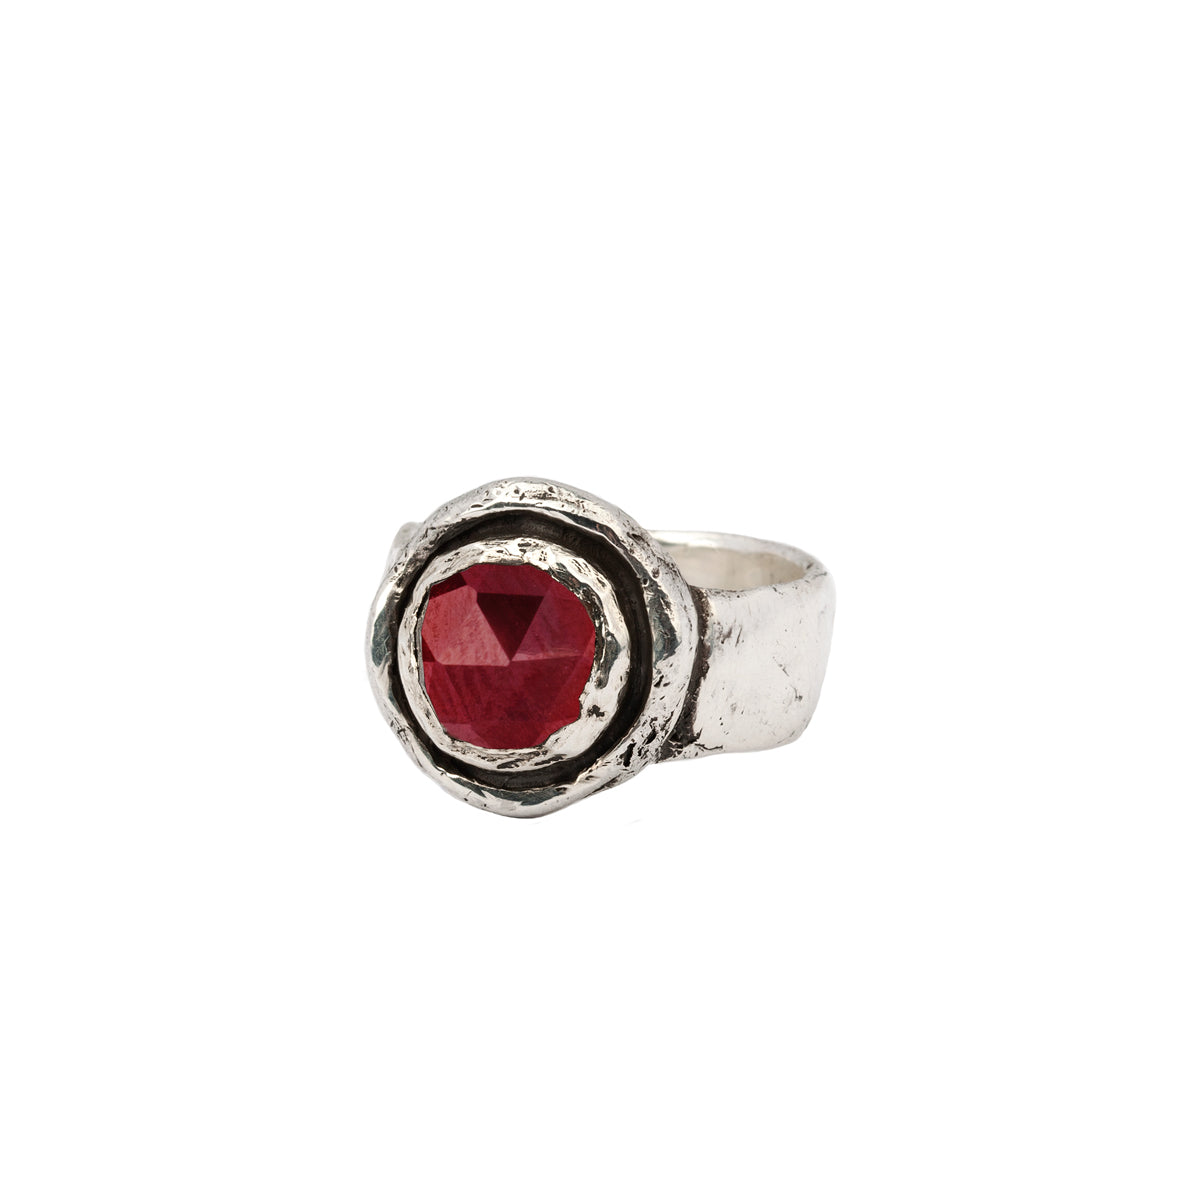 Garnet Faceted Stone Talisman Ring